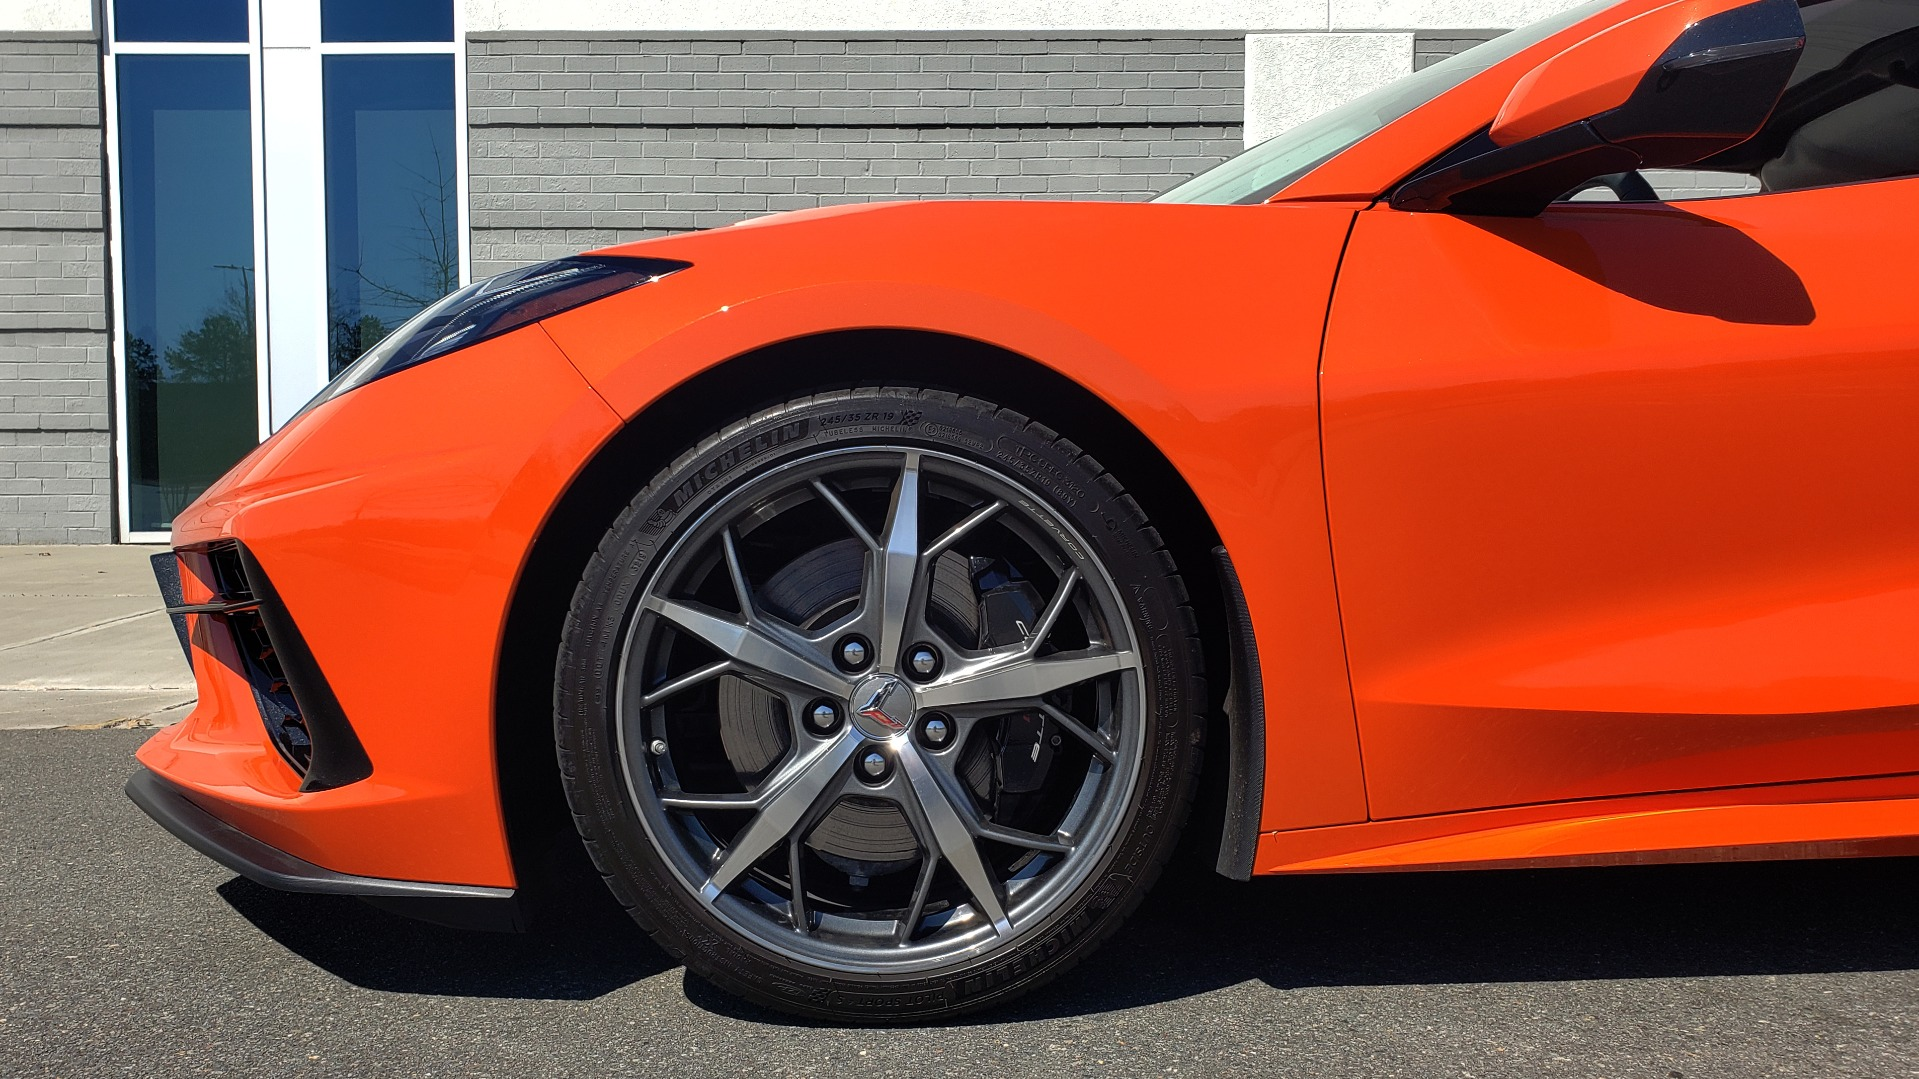 Used 2020 Chevrolet CORVETTE C8 STINGRAY 3LT COUPE / NAV / BOSE / CAMERA / LIKE NEW for sale Sold at Formula Imports in Charlotte NC 28227 70